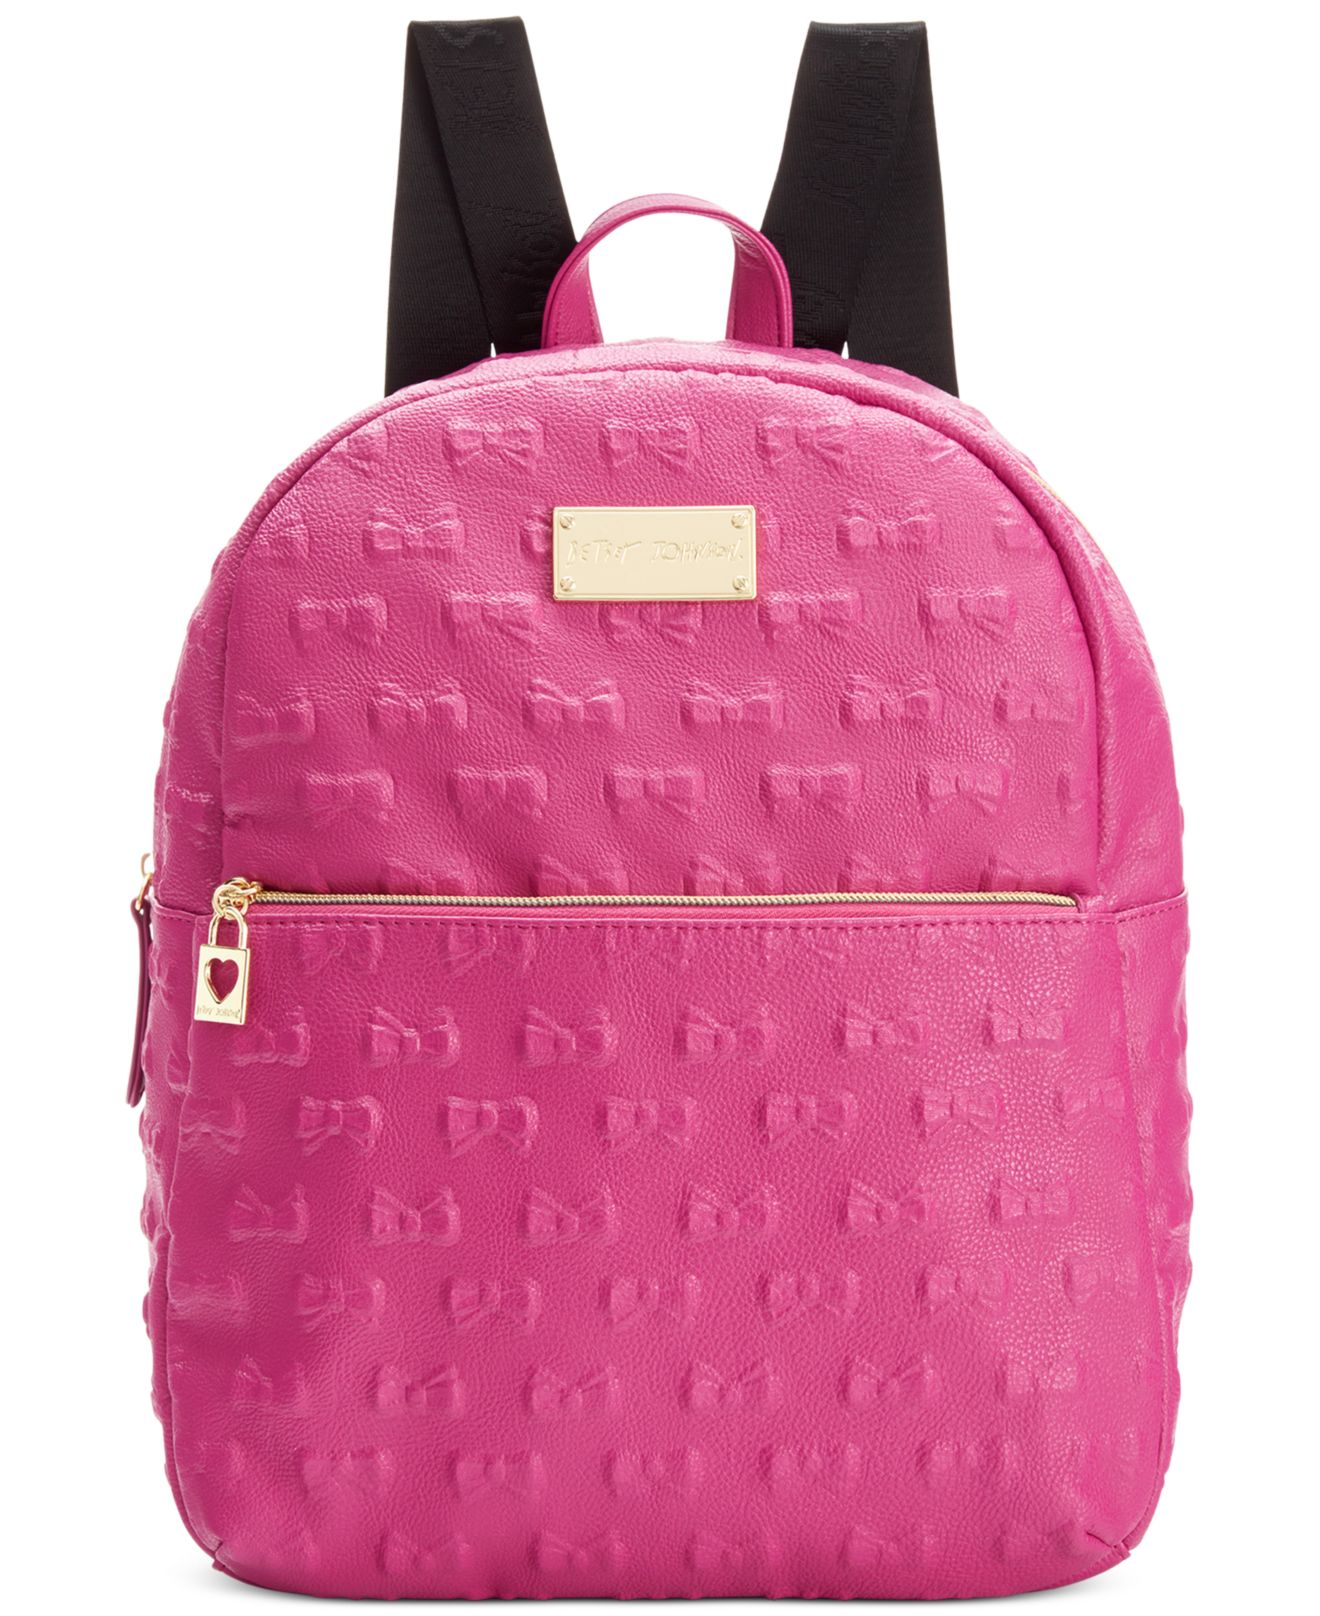 Lyst - Betsey Johnson Macy s Exclusive Debossed Bow Mini Backpack in ... 828e1acb25125